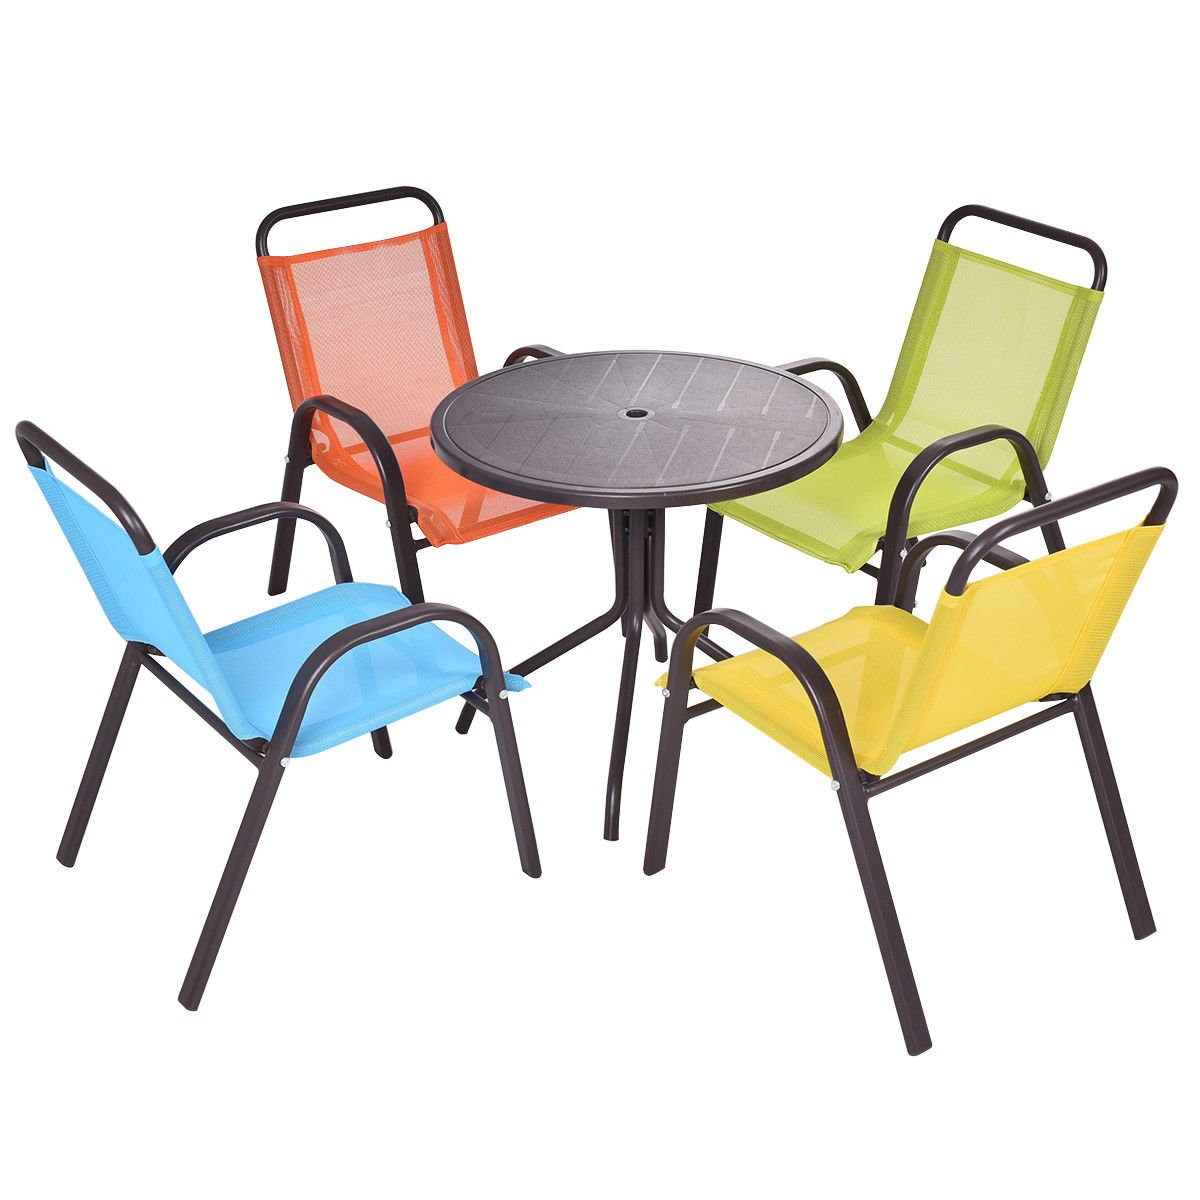 Costzon Kids Table Set, 5 Pieces Patio Activity Table and Chairs Set